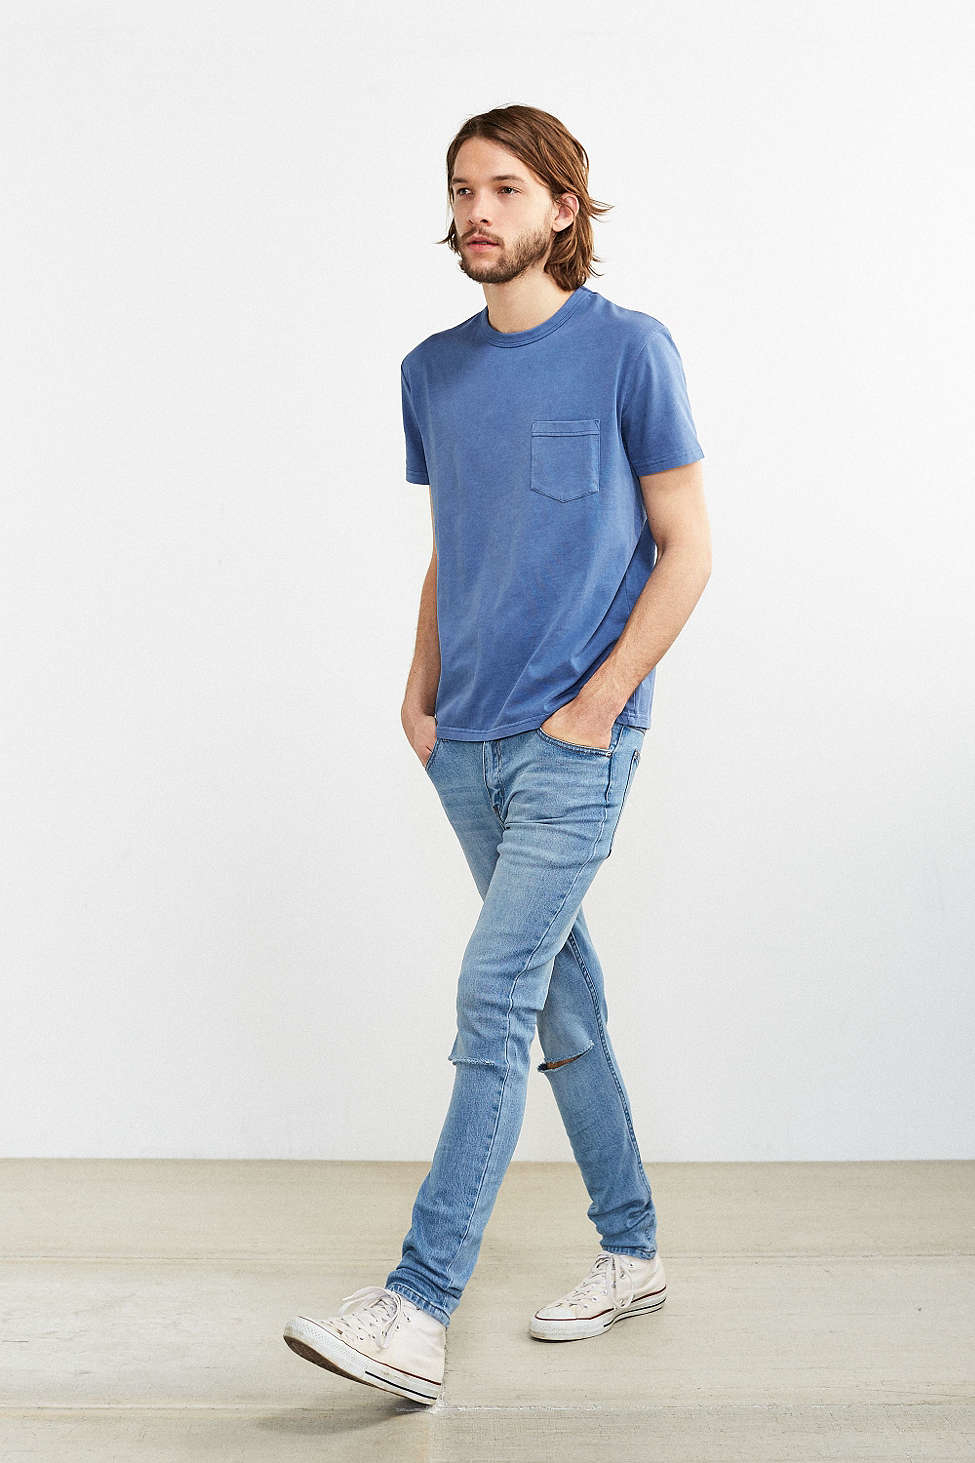 f51d9ca3 Find your favorite Women's Skinny Jeans with a variety of washes and  details at American Eagle